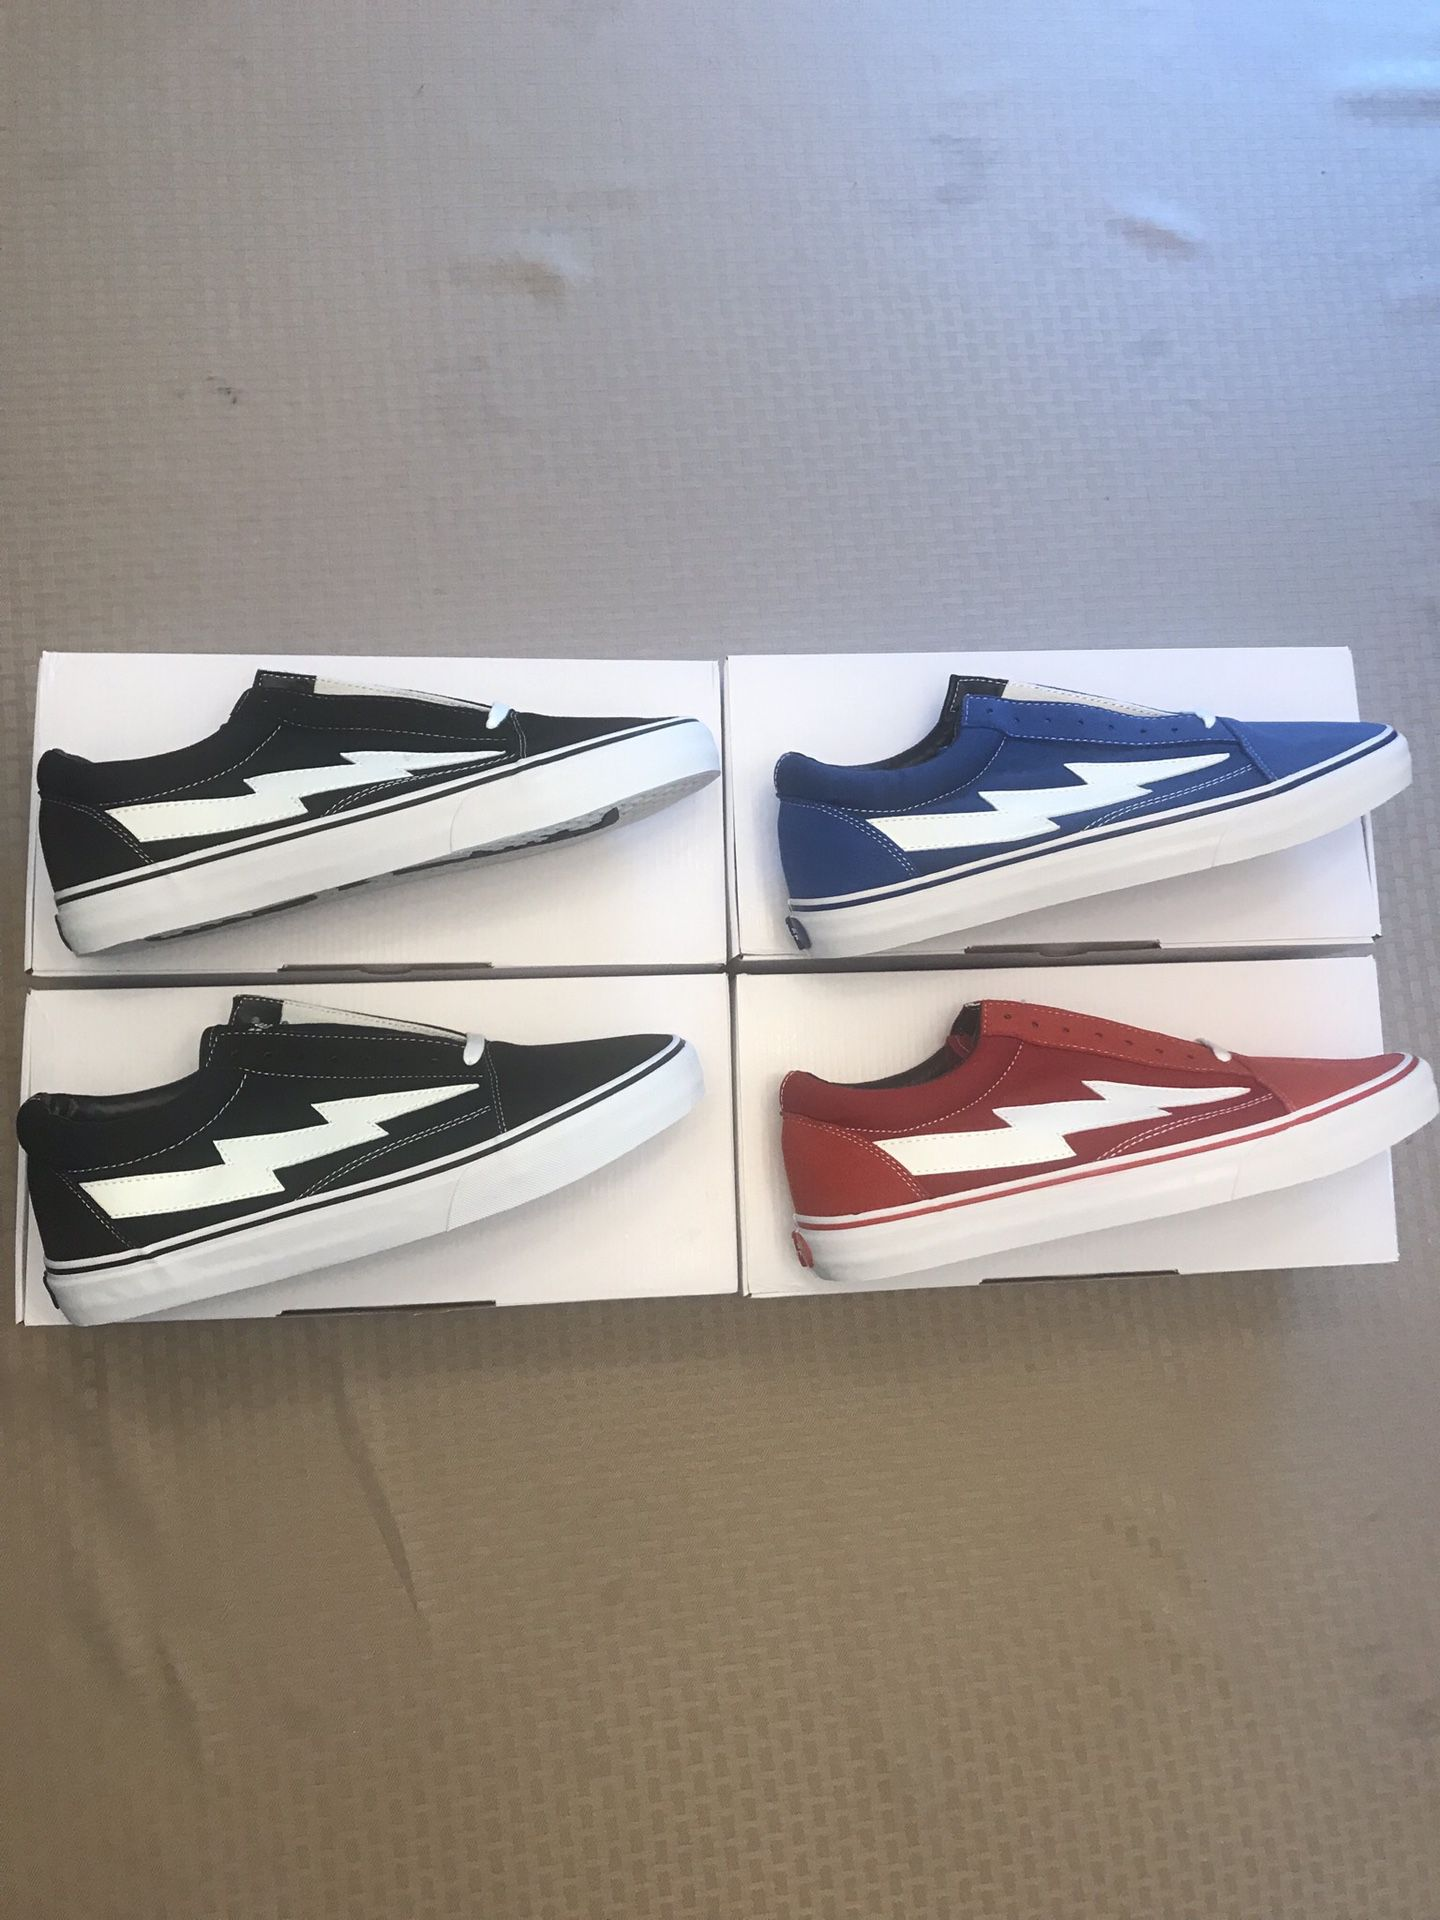 Revenge Storm OG Blue, Red, & Black Sizes 12 & 13 Ian Connor Low Top Sneakers